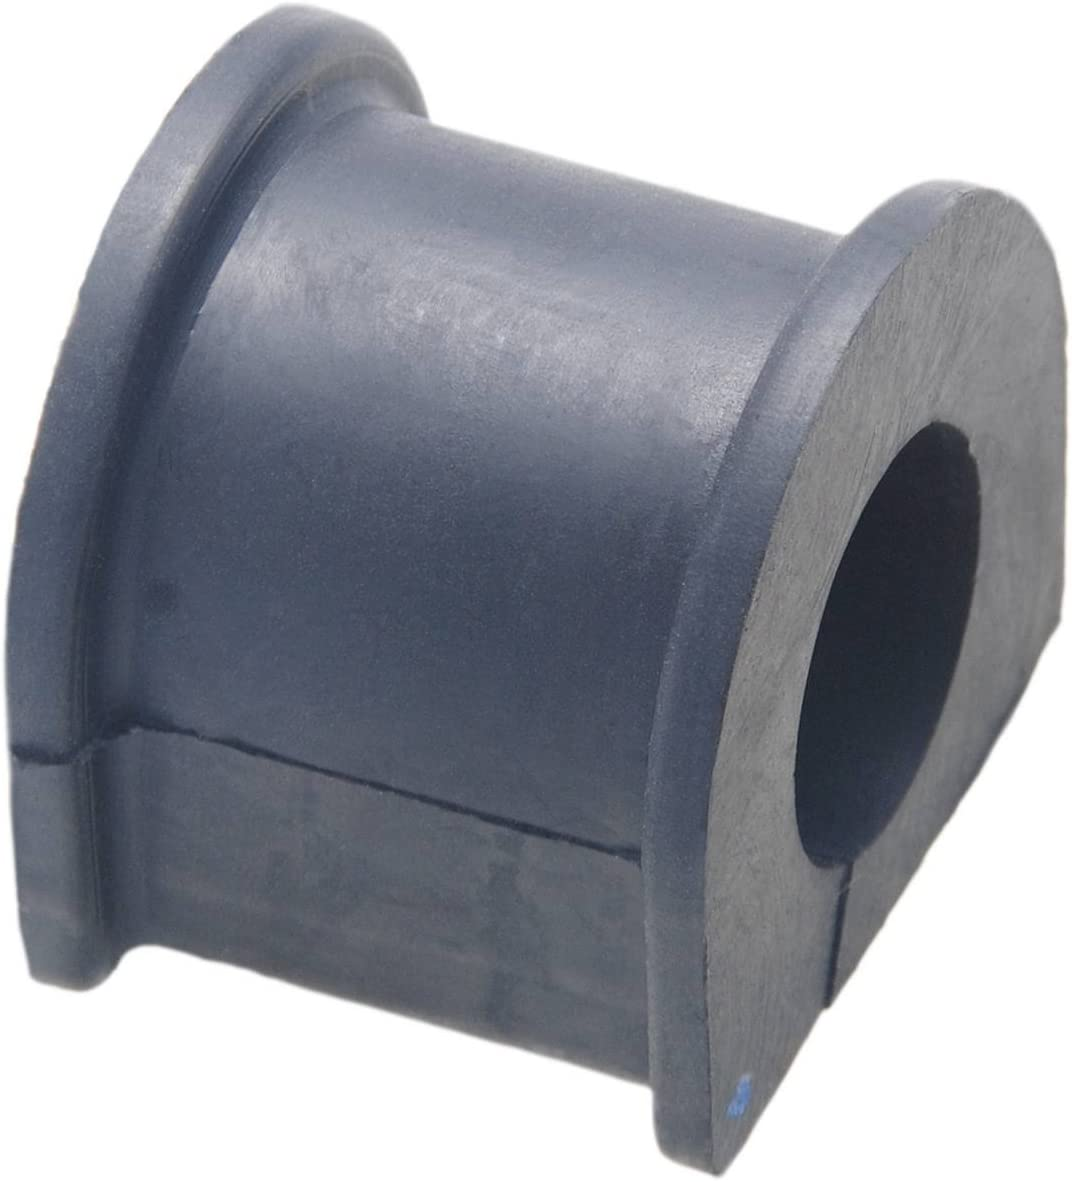 4881526150 Rear Stabilizer Bushing D25 For Toyota